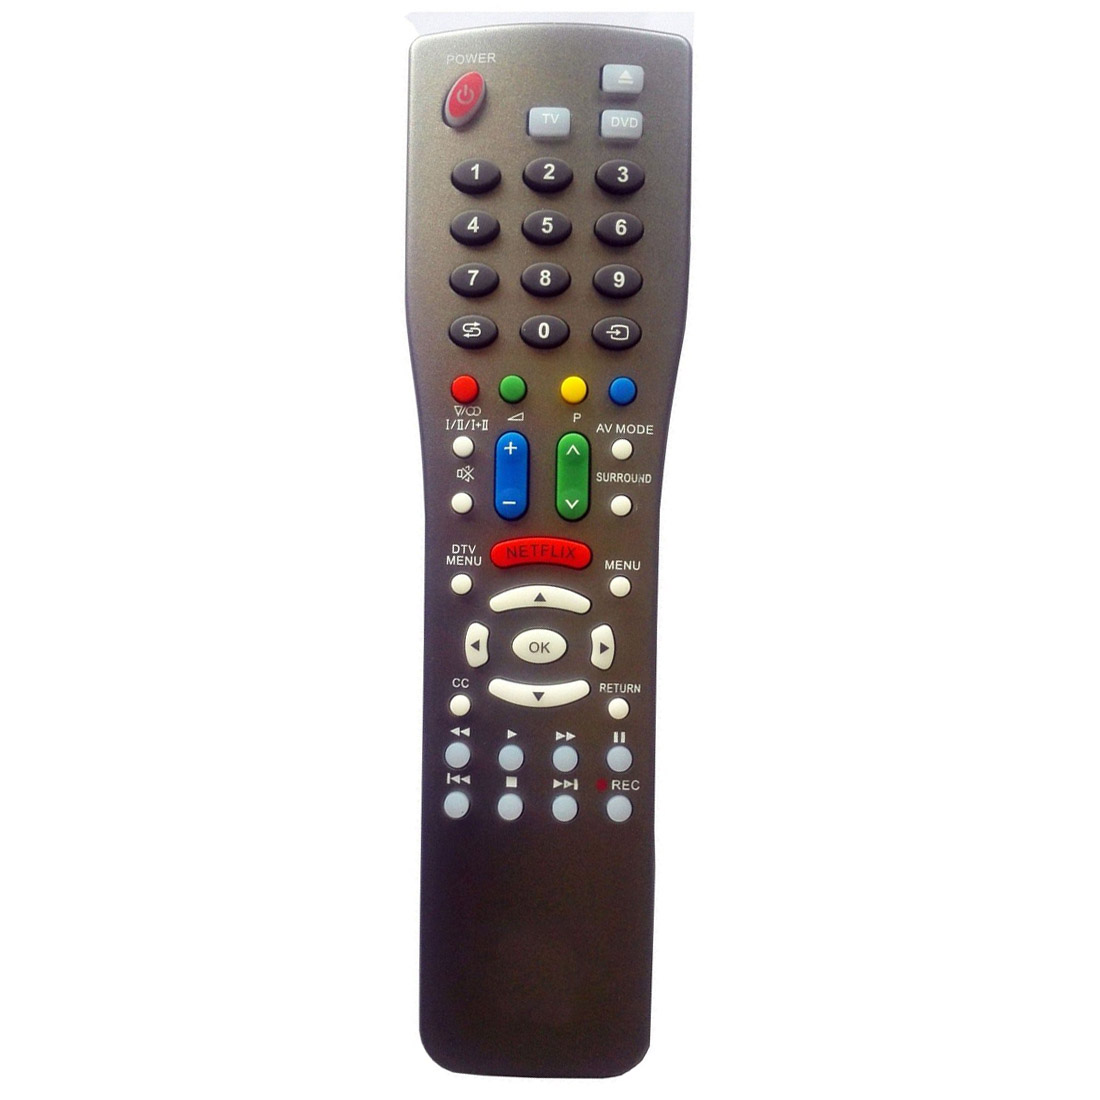 NEW for SHARP TV Blu-ray DVD player Universal Remote NO programming Needed original smart intelligent remote control ak59 00172a universal for dvd blu ray player bd f5700 for samsung